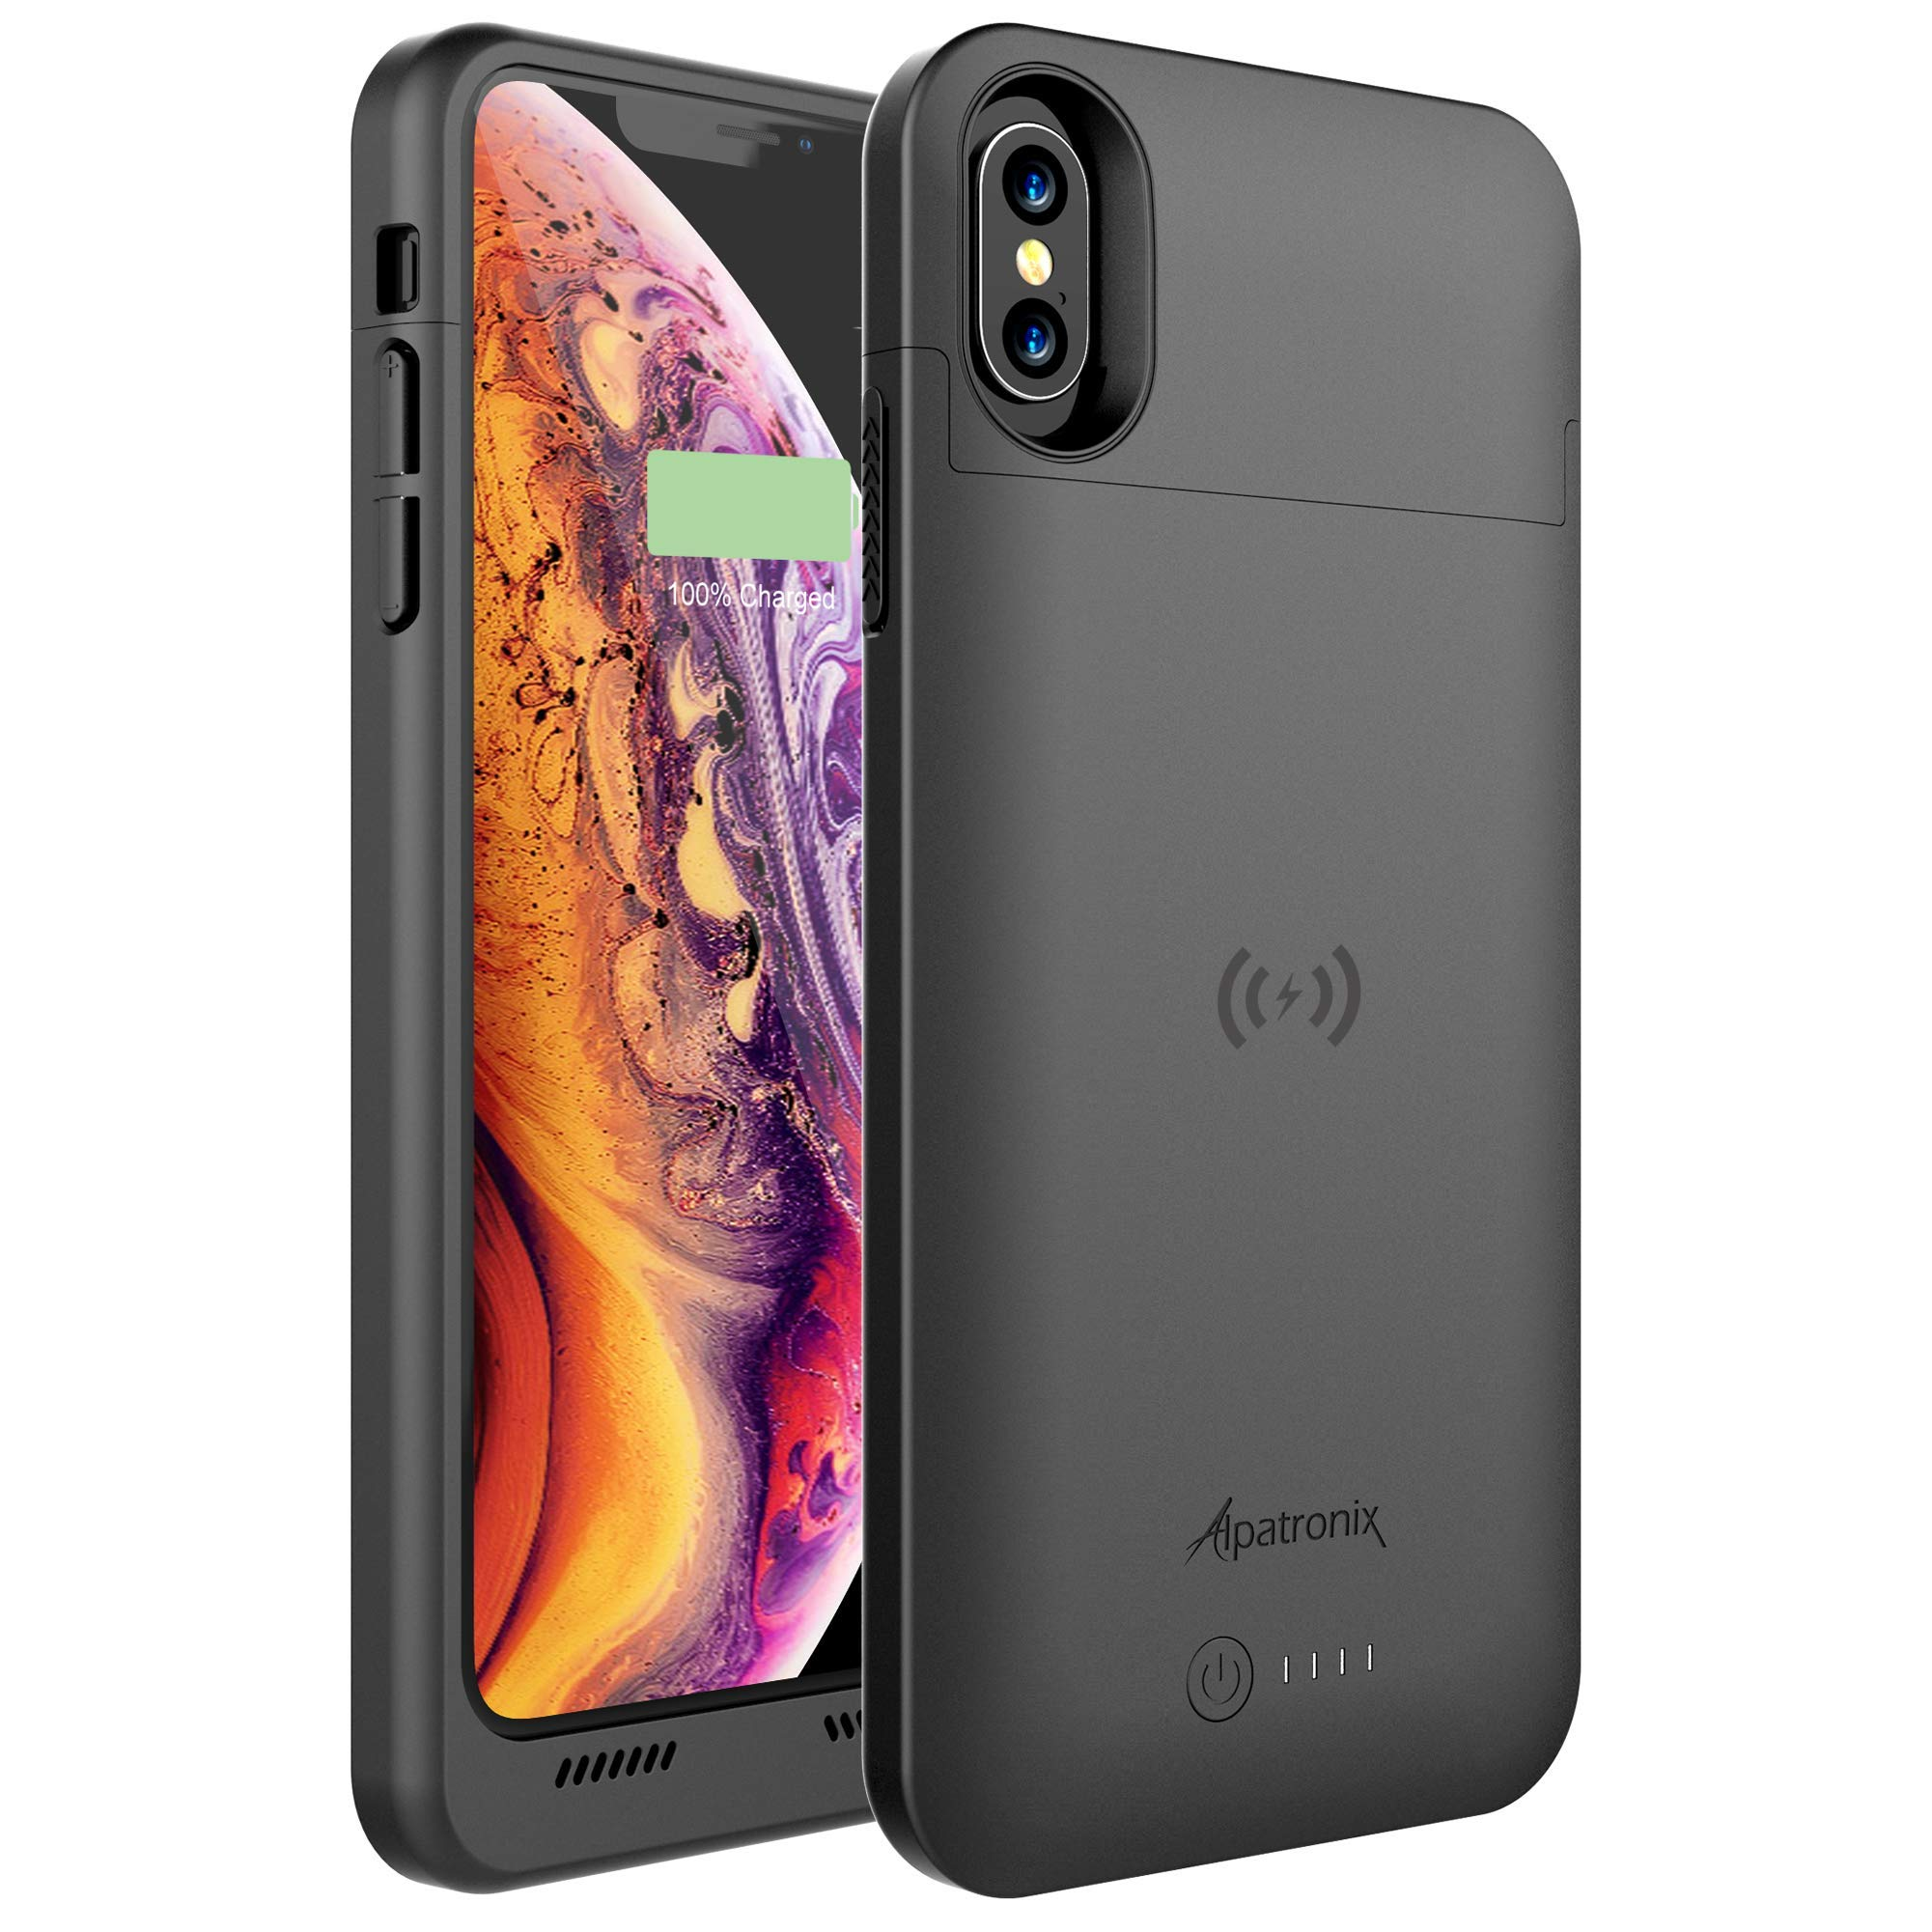 Alpatronix iPhone Xs Max Battery Case, 5000mAh Slim Portable Protective Extended Charger Cover with Qi Wireless Charging Compatible with iPhone Xs Max (6.5 inch) BXX Max - (Black) by Alpatronix